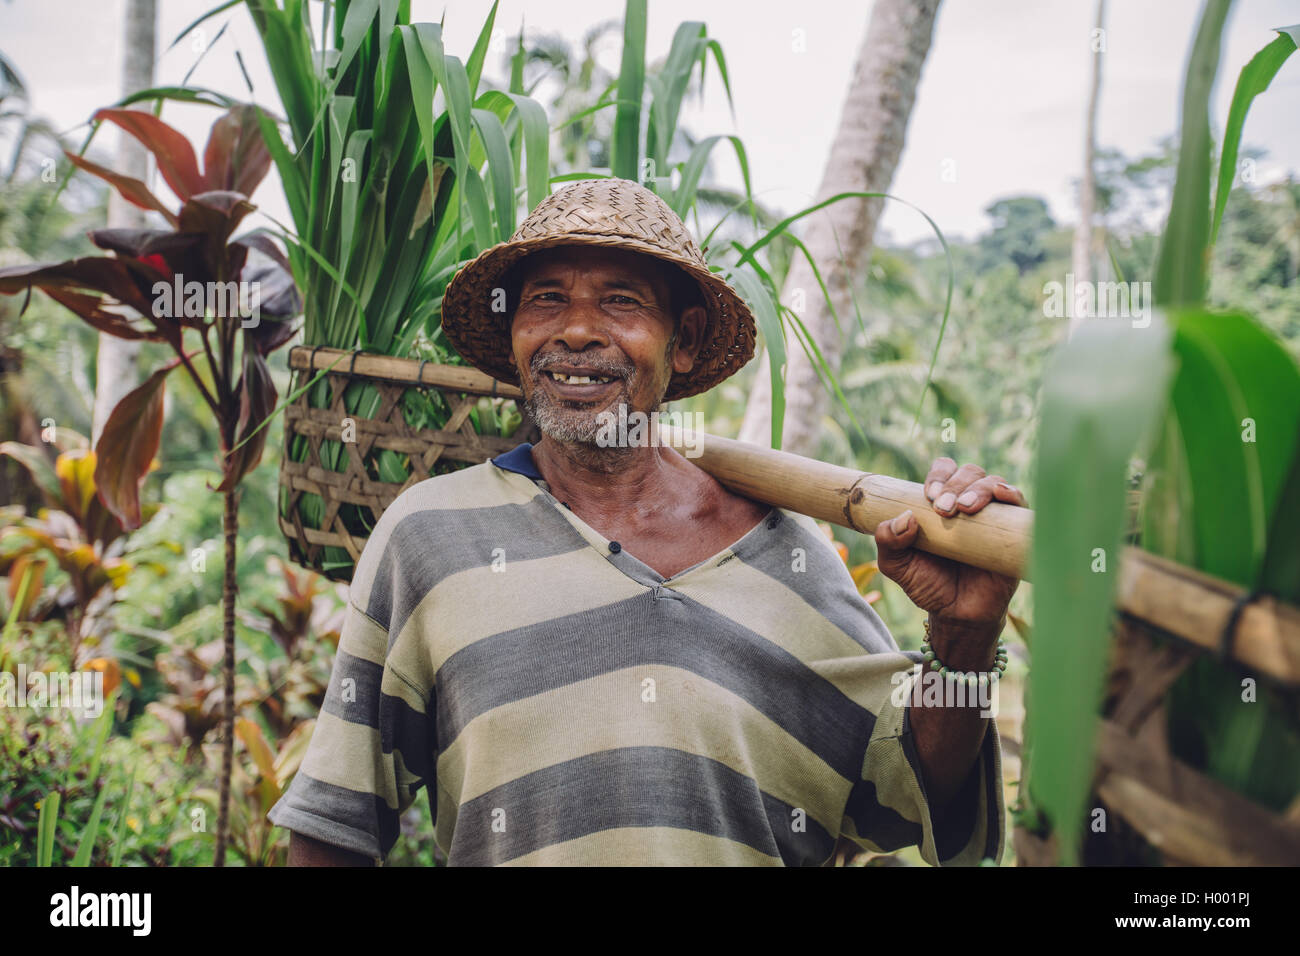 Shot of happy senior farmer carrying a yoke on his shoulders with seedlings. Old farmer working in his farm. - Stock Image